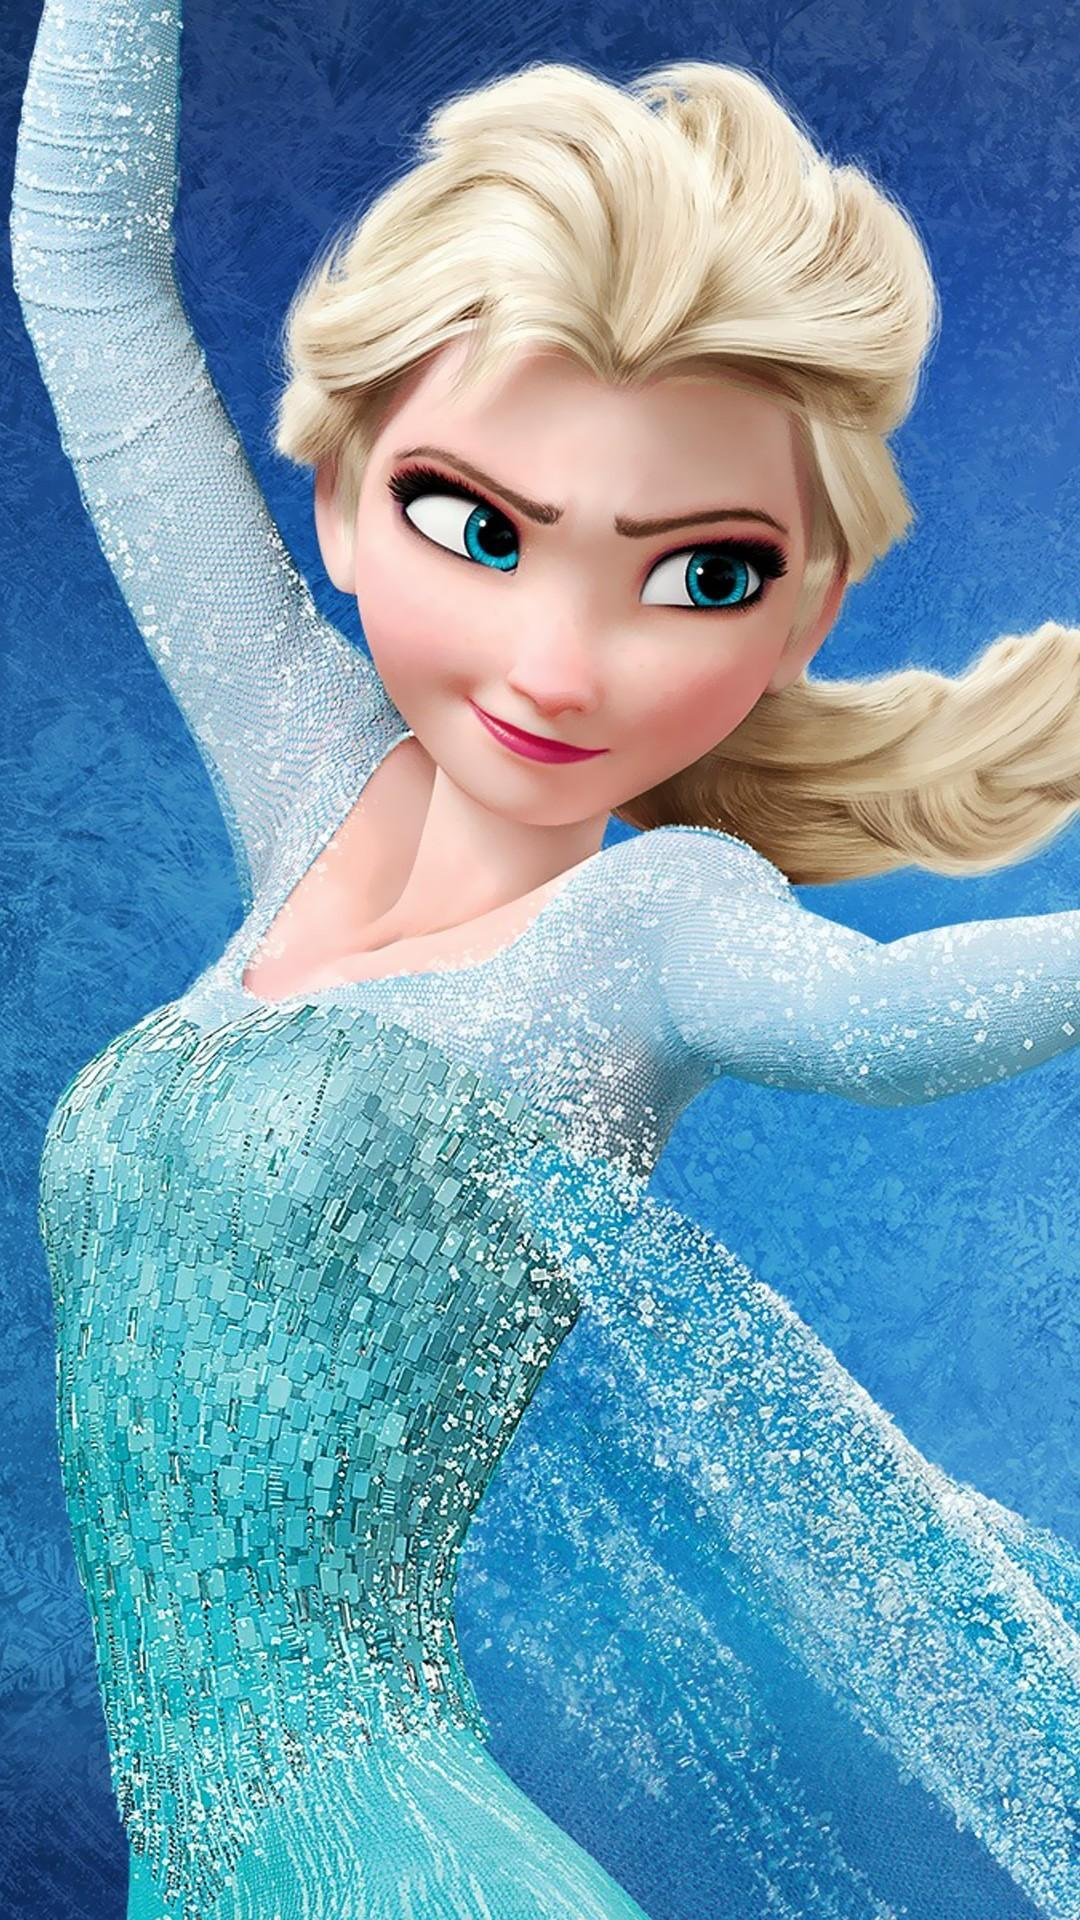 what powers does elsa have?